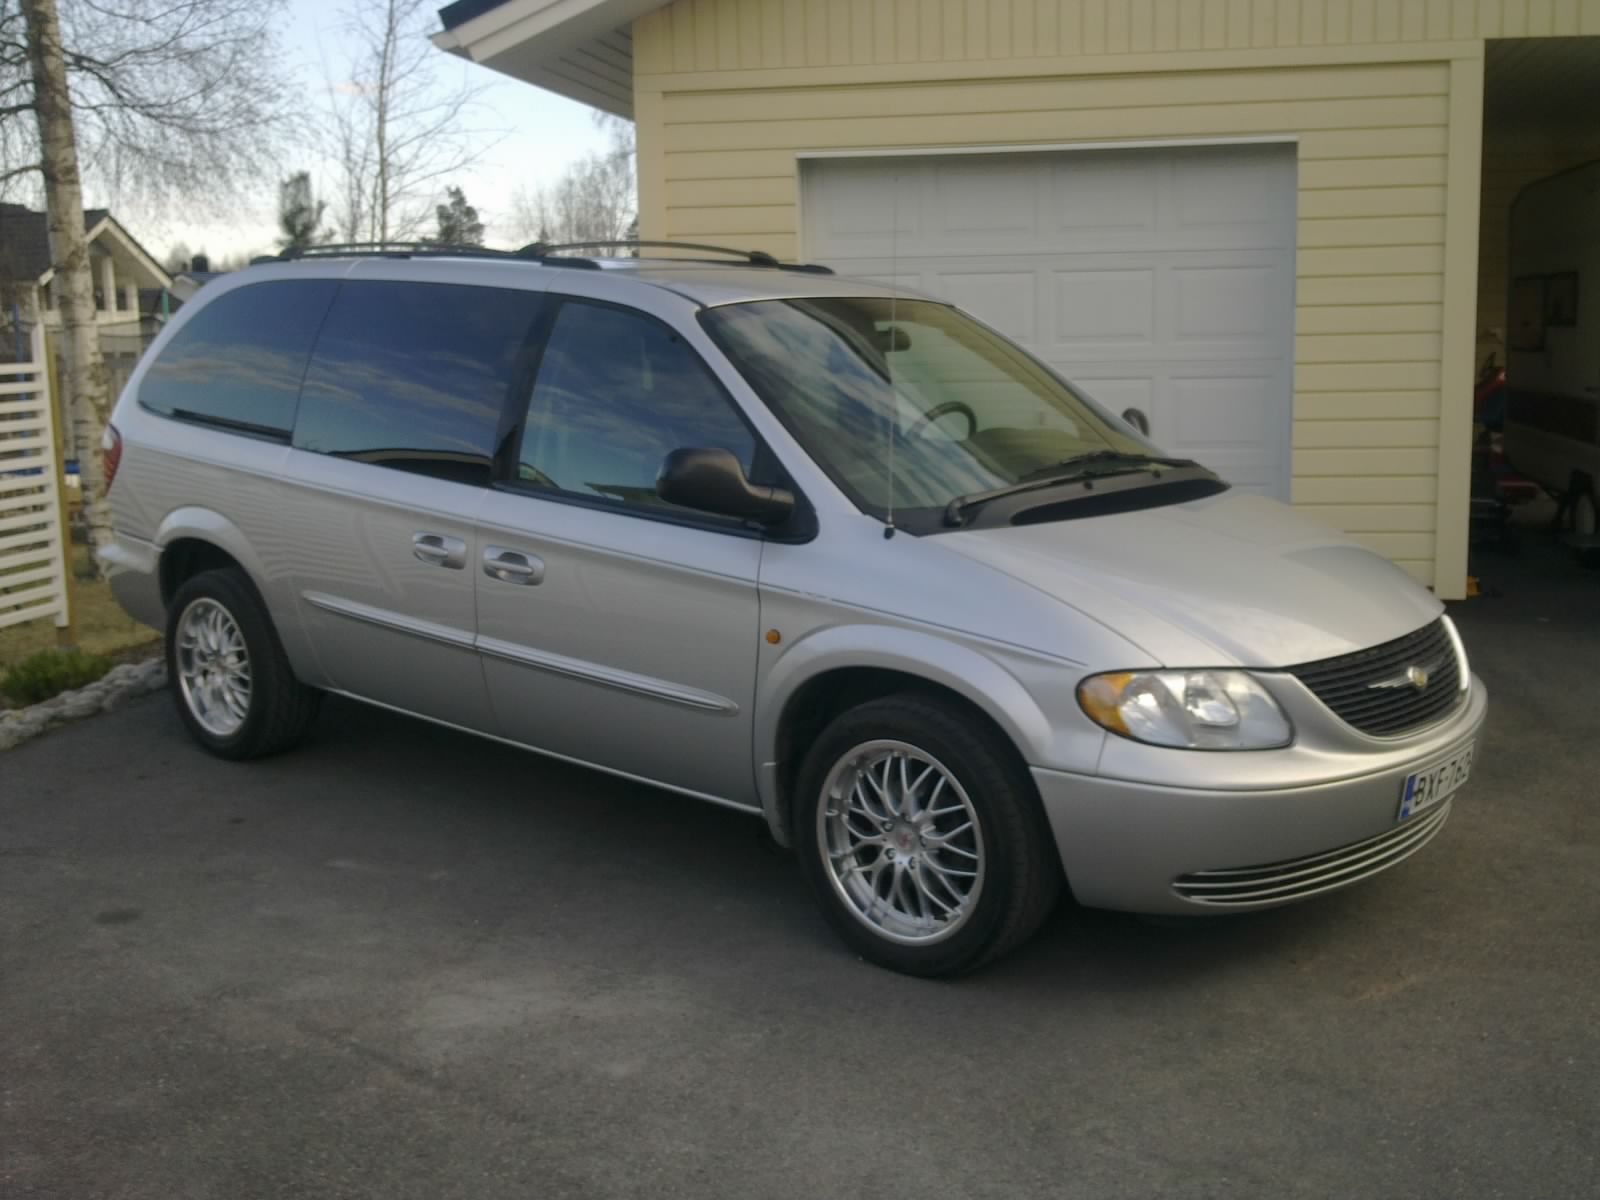 2003 Chrysler Town & Country EX picture